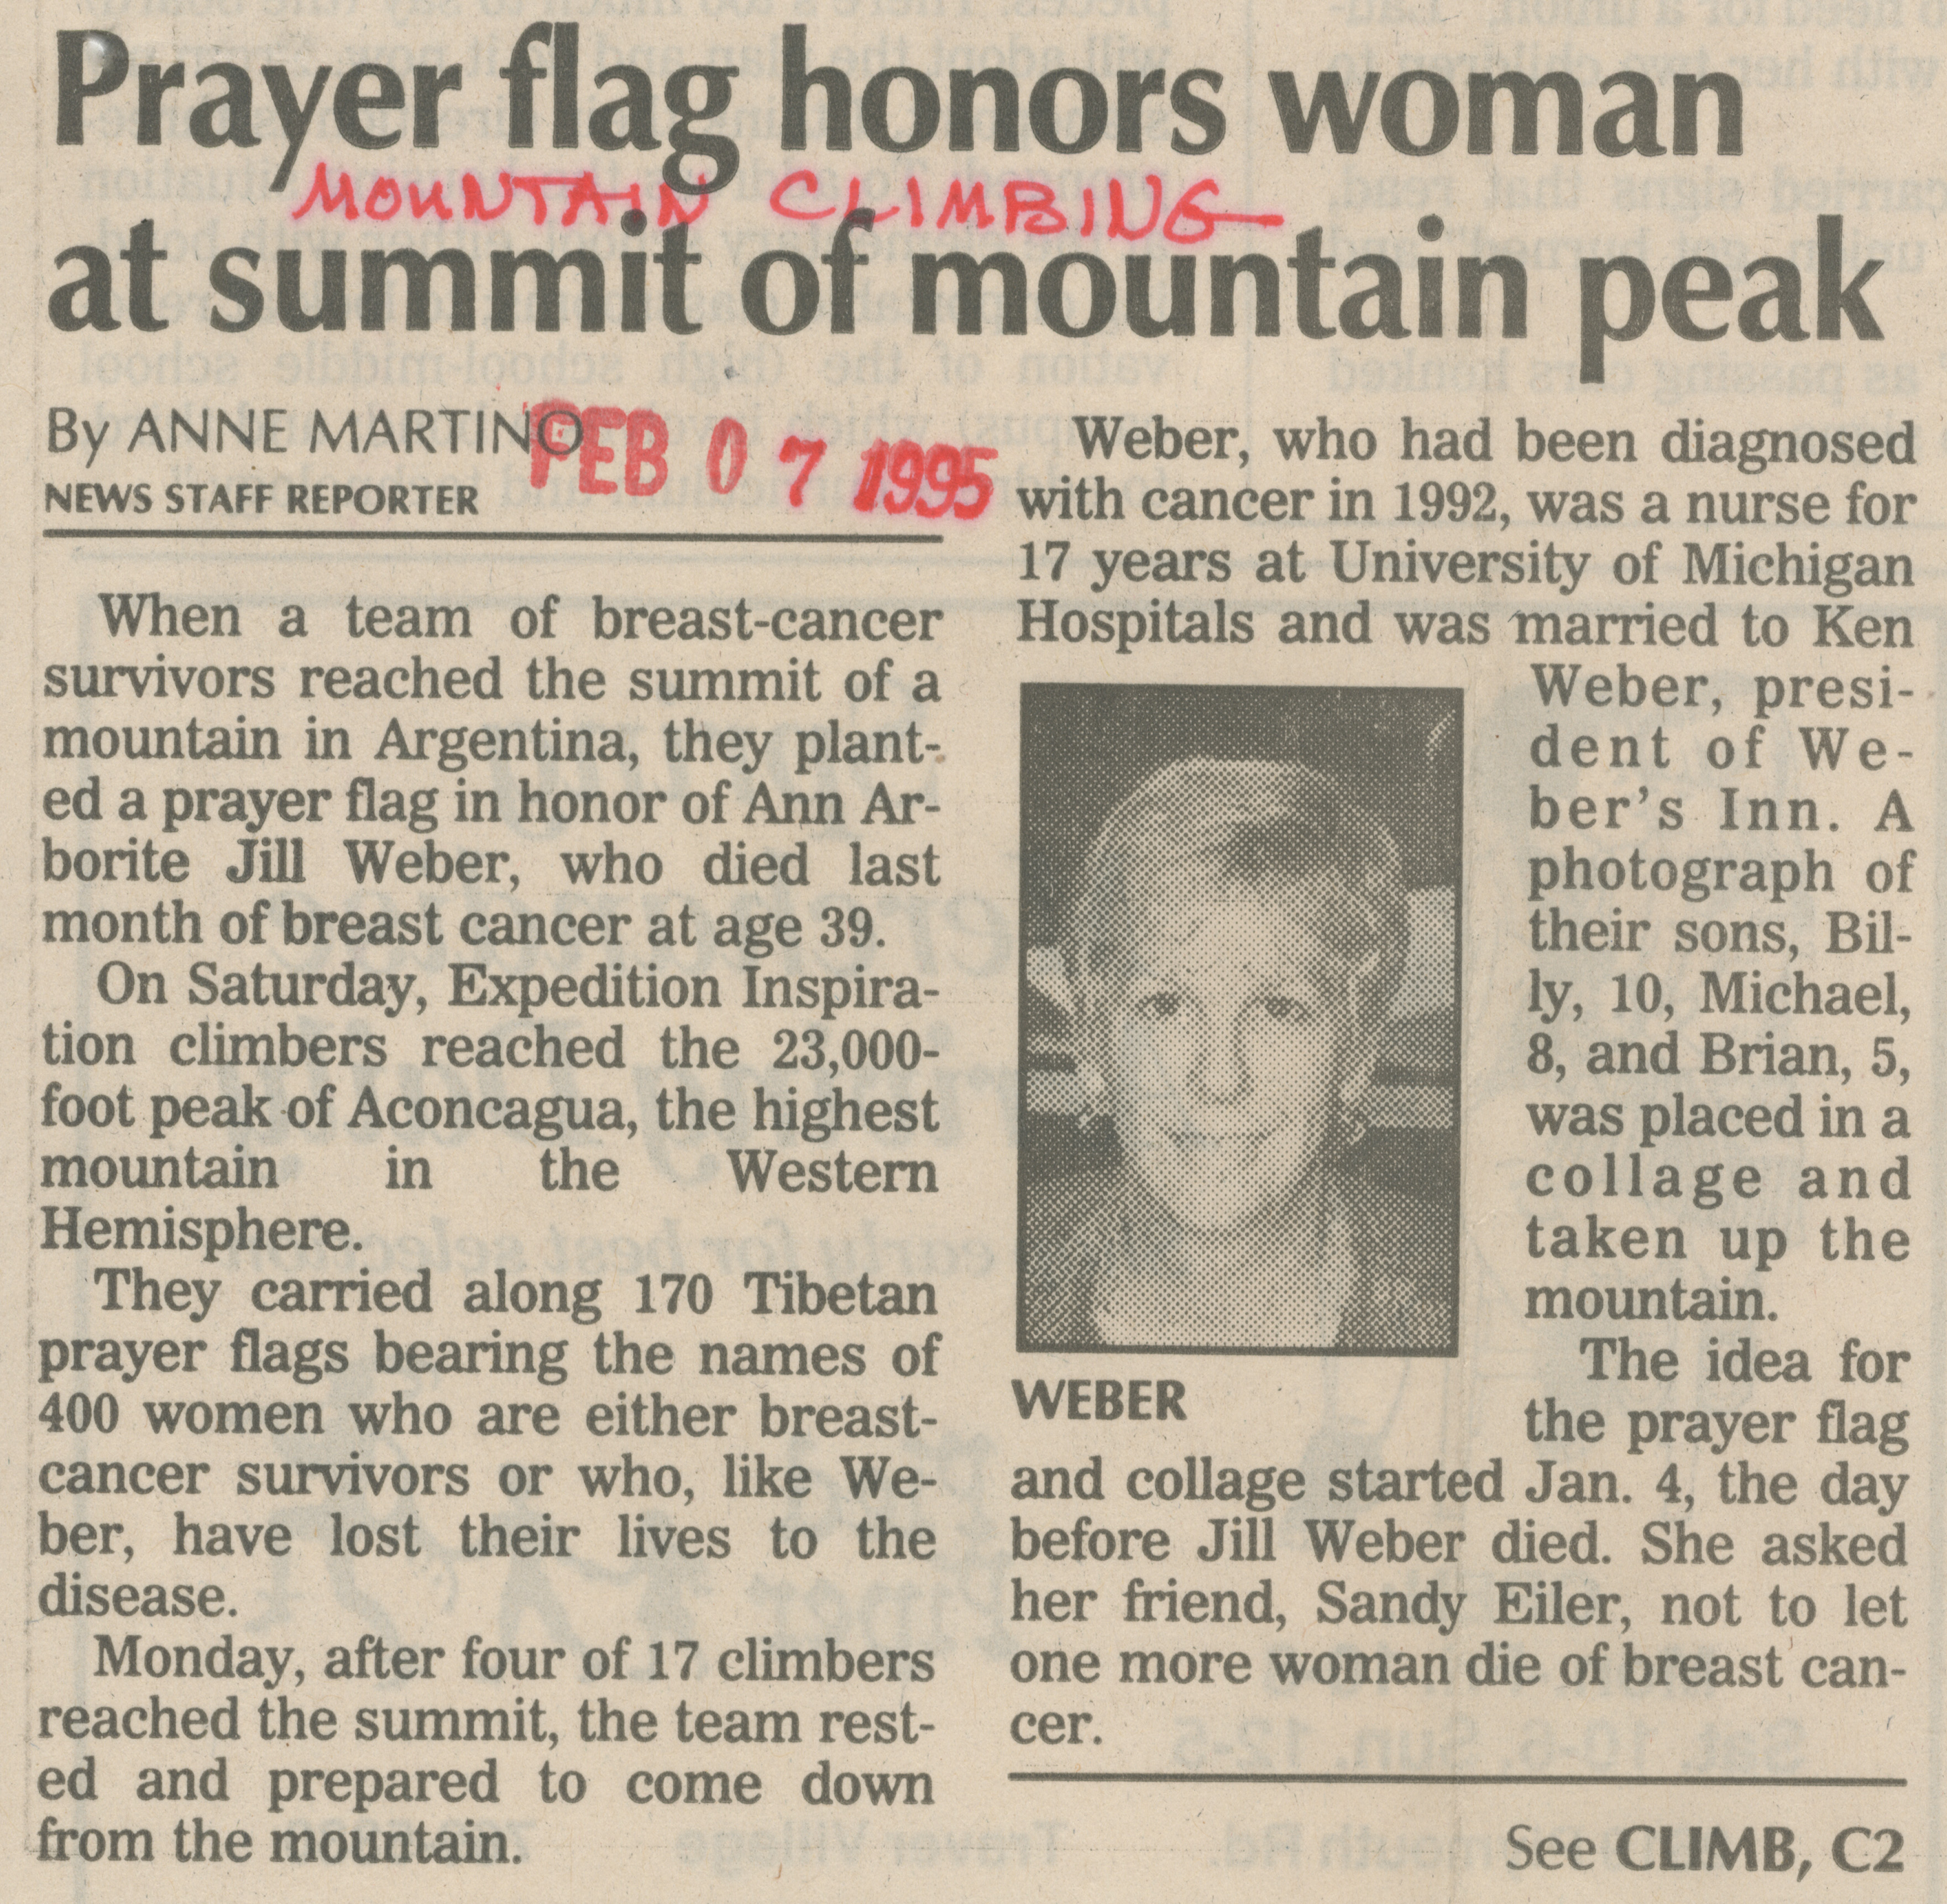 Prayer Flag Honors Woman at Summit of Mountain Peak image